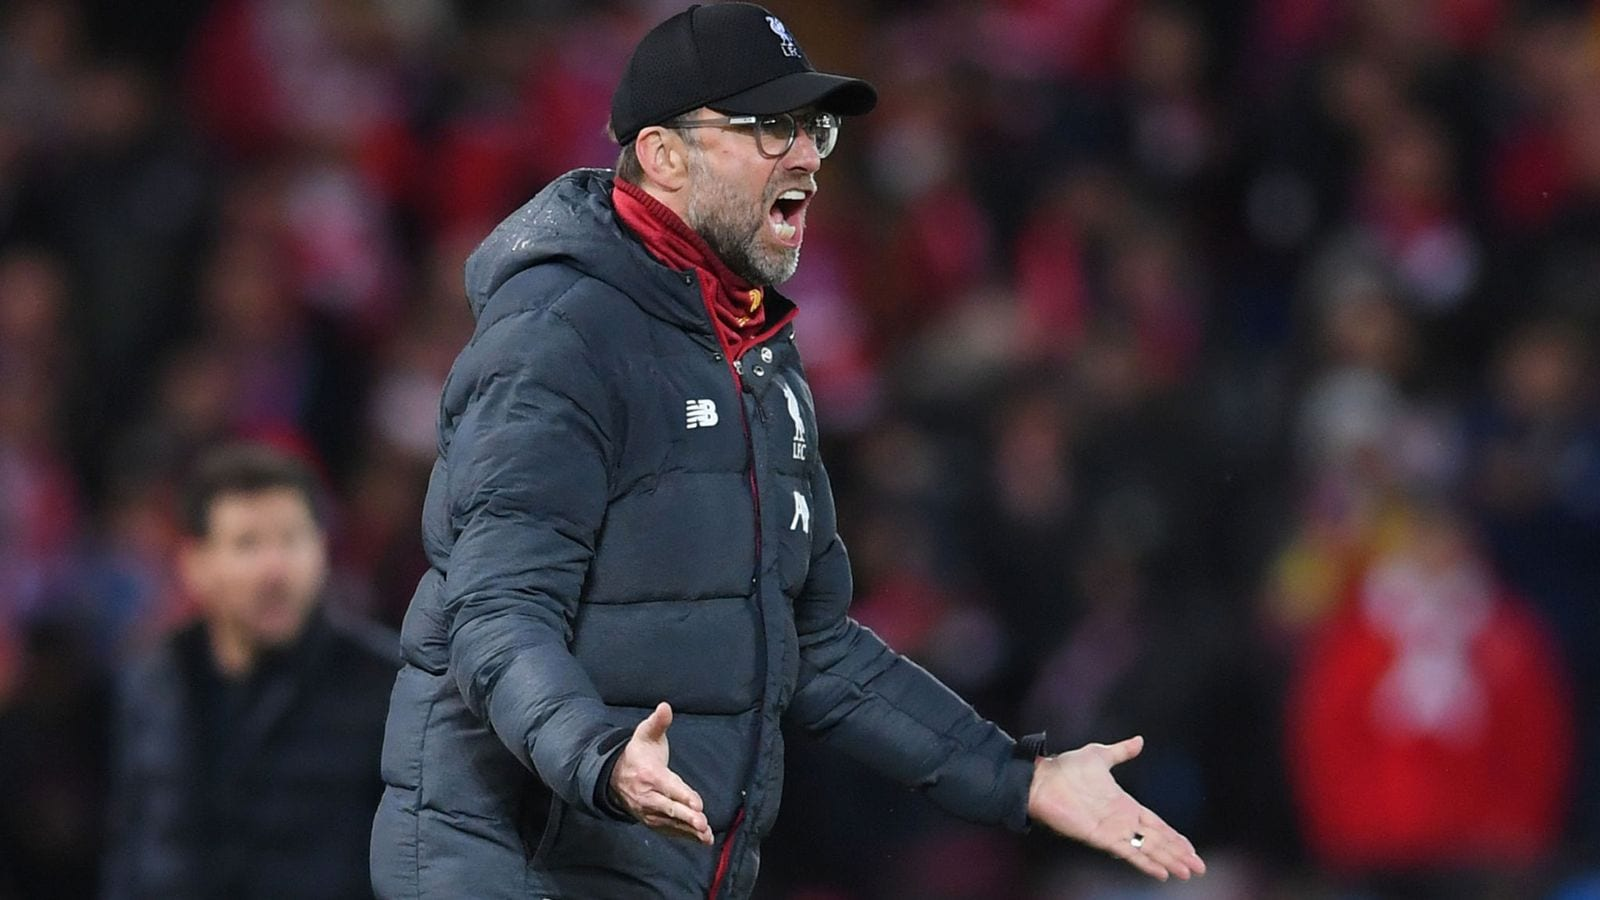 Jurgen Klopp questions Atletico Madrid style after Liverpool's Champions League exit | Football News | Sky Sports